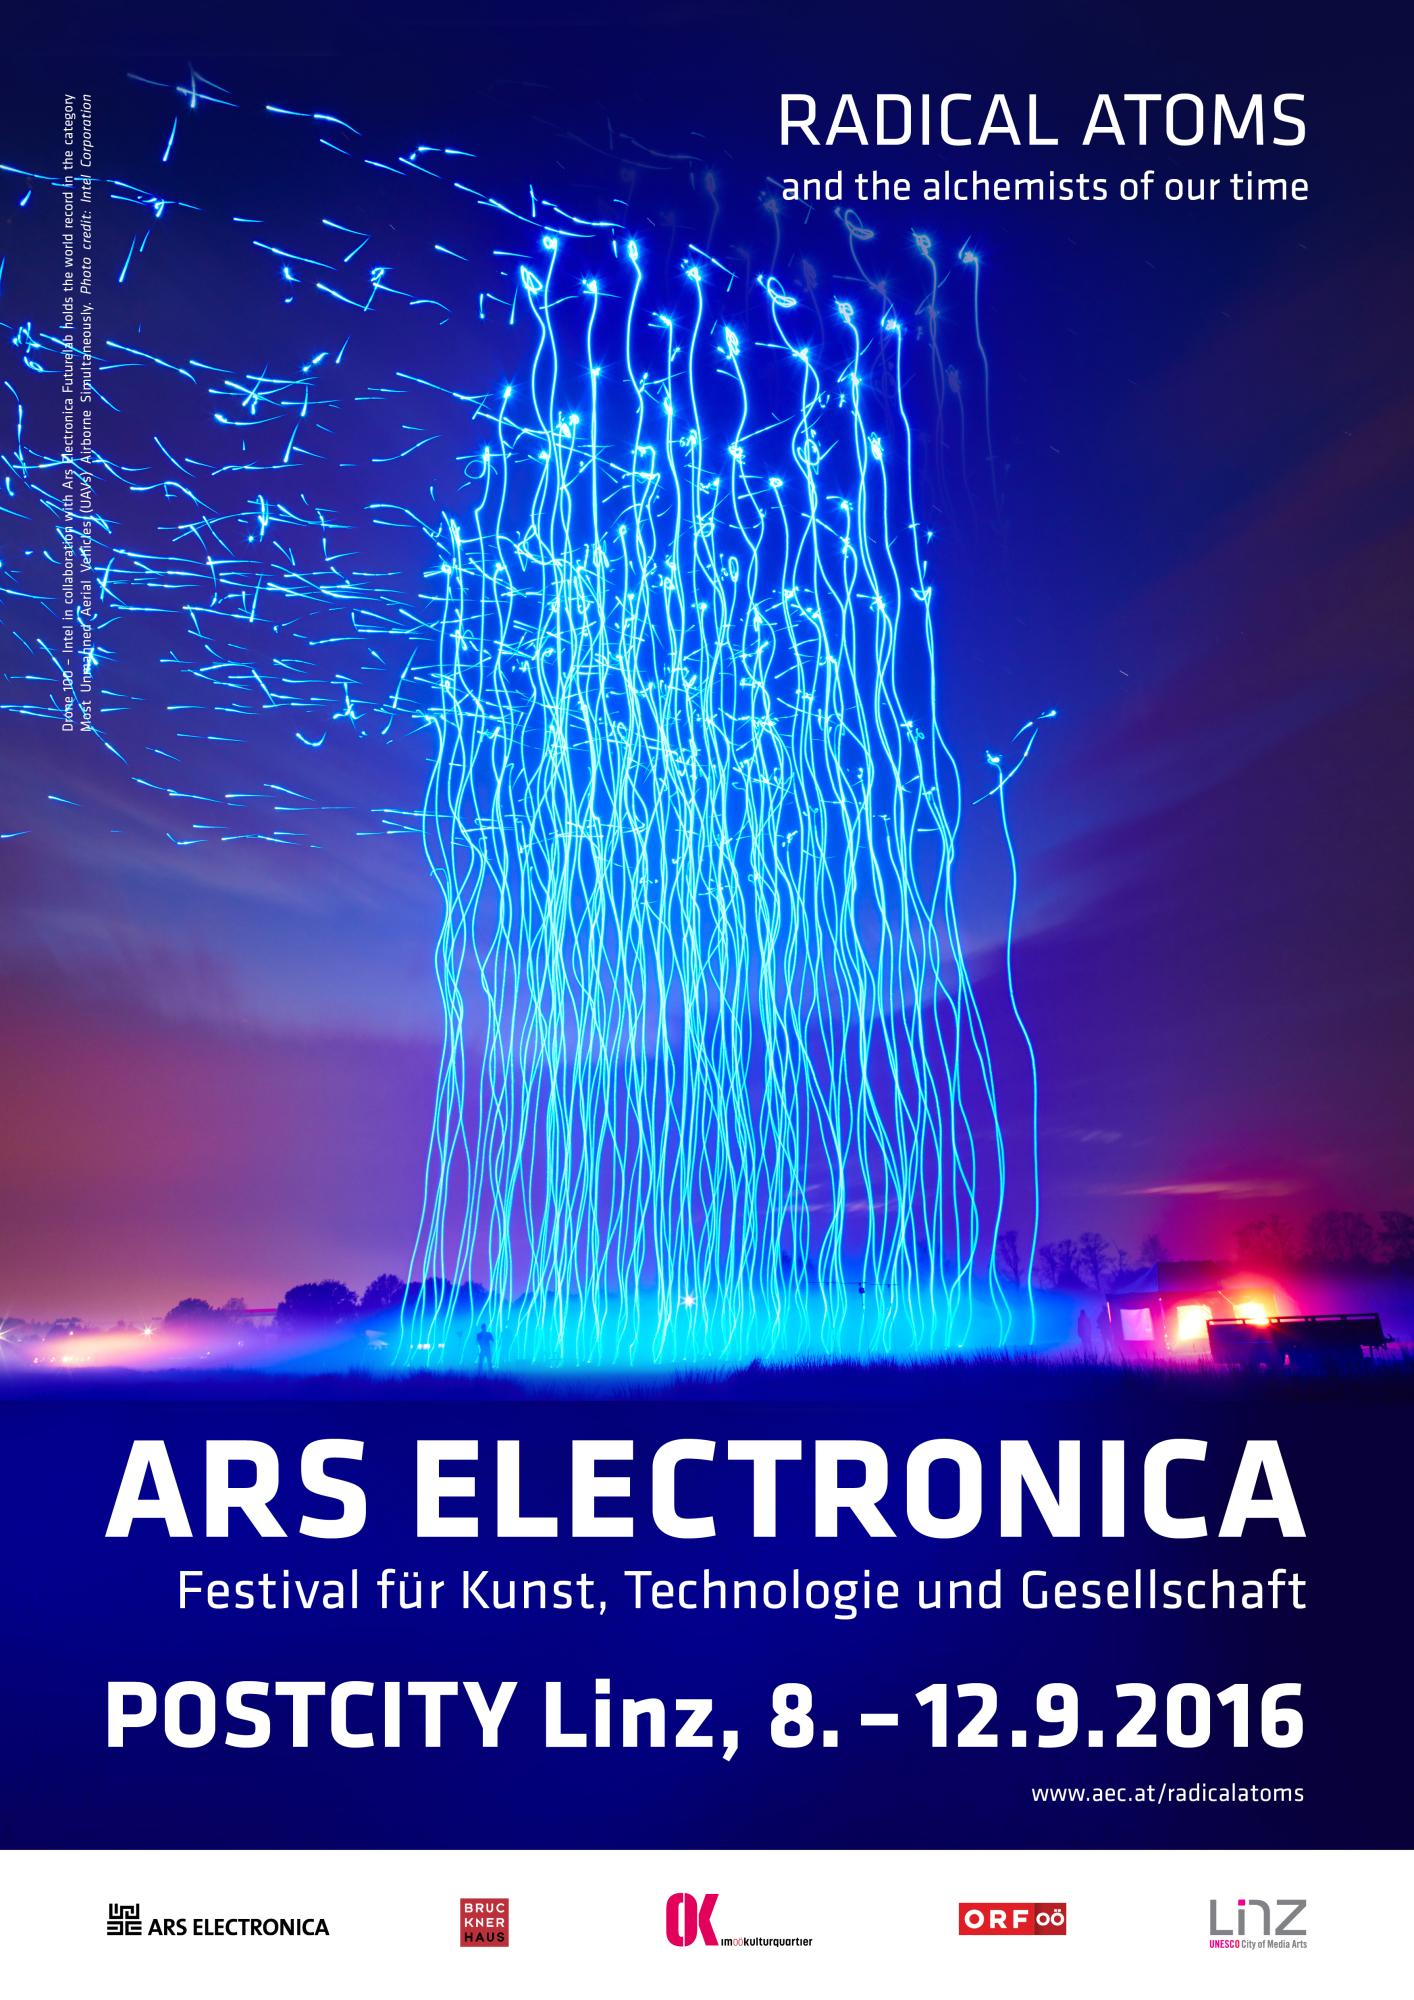 Ars Electronica Festival 2016 RADICAL ATOMS and the alchemists of our time